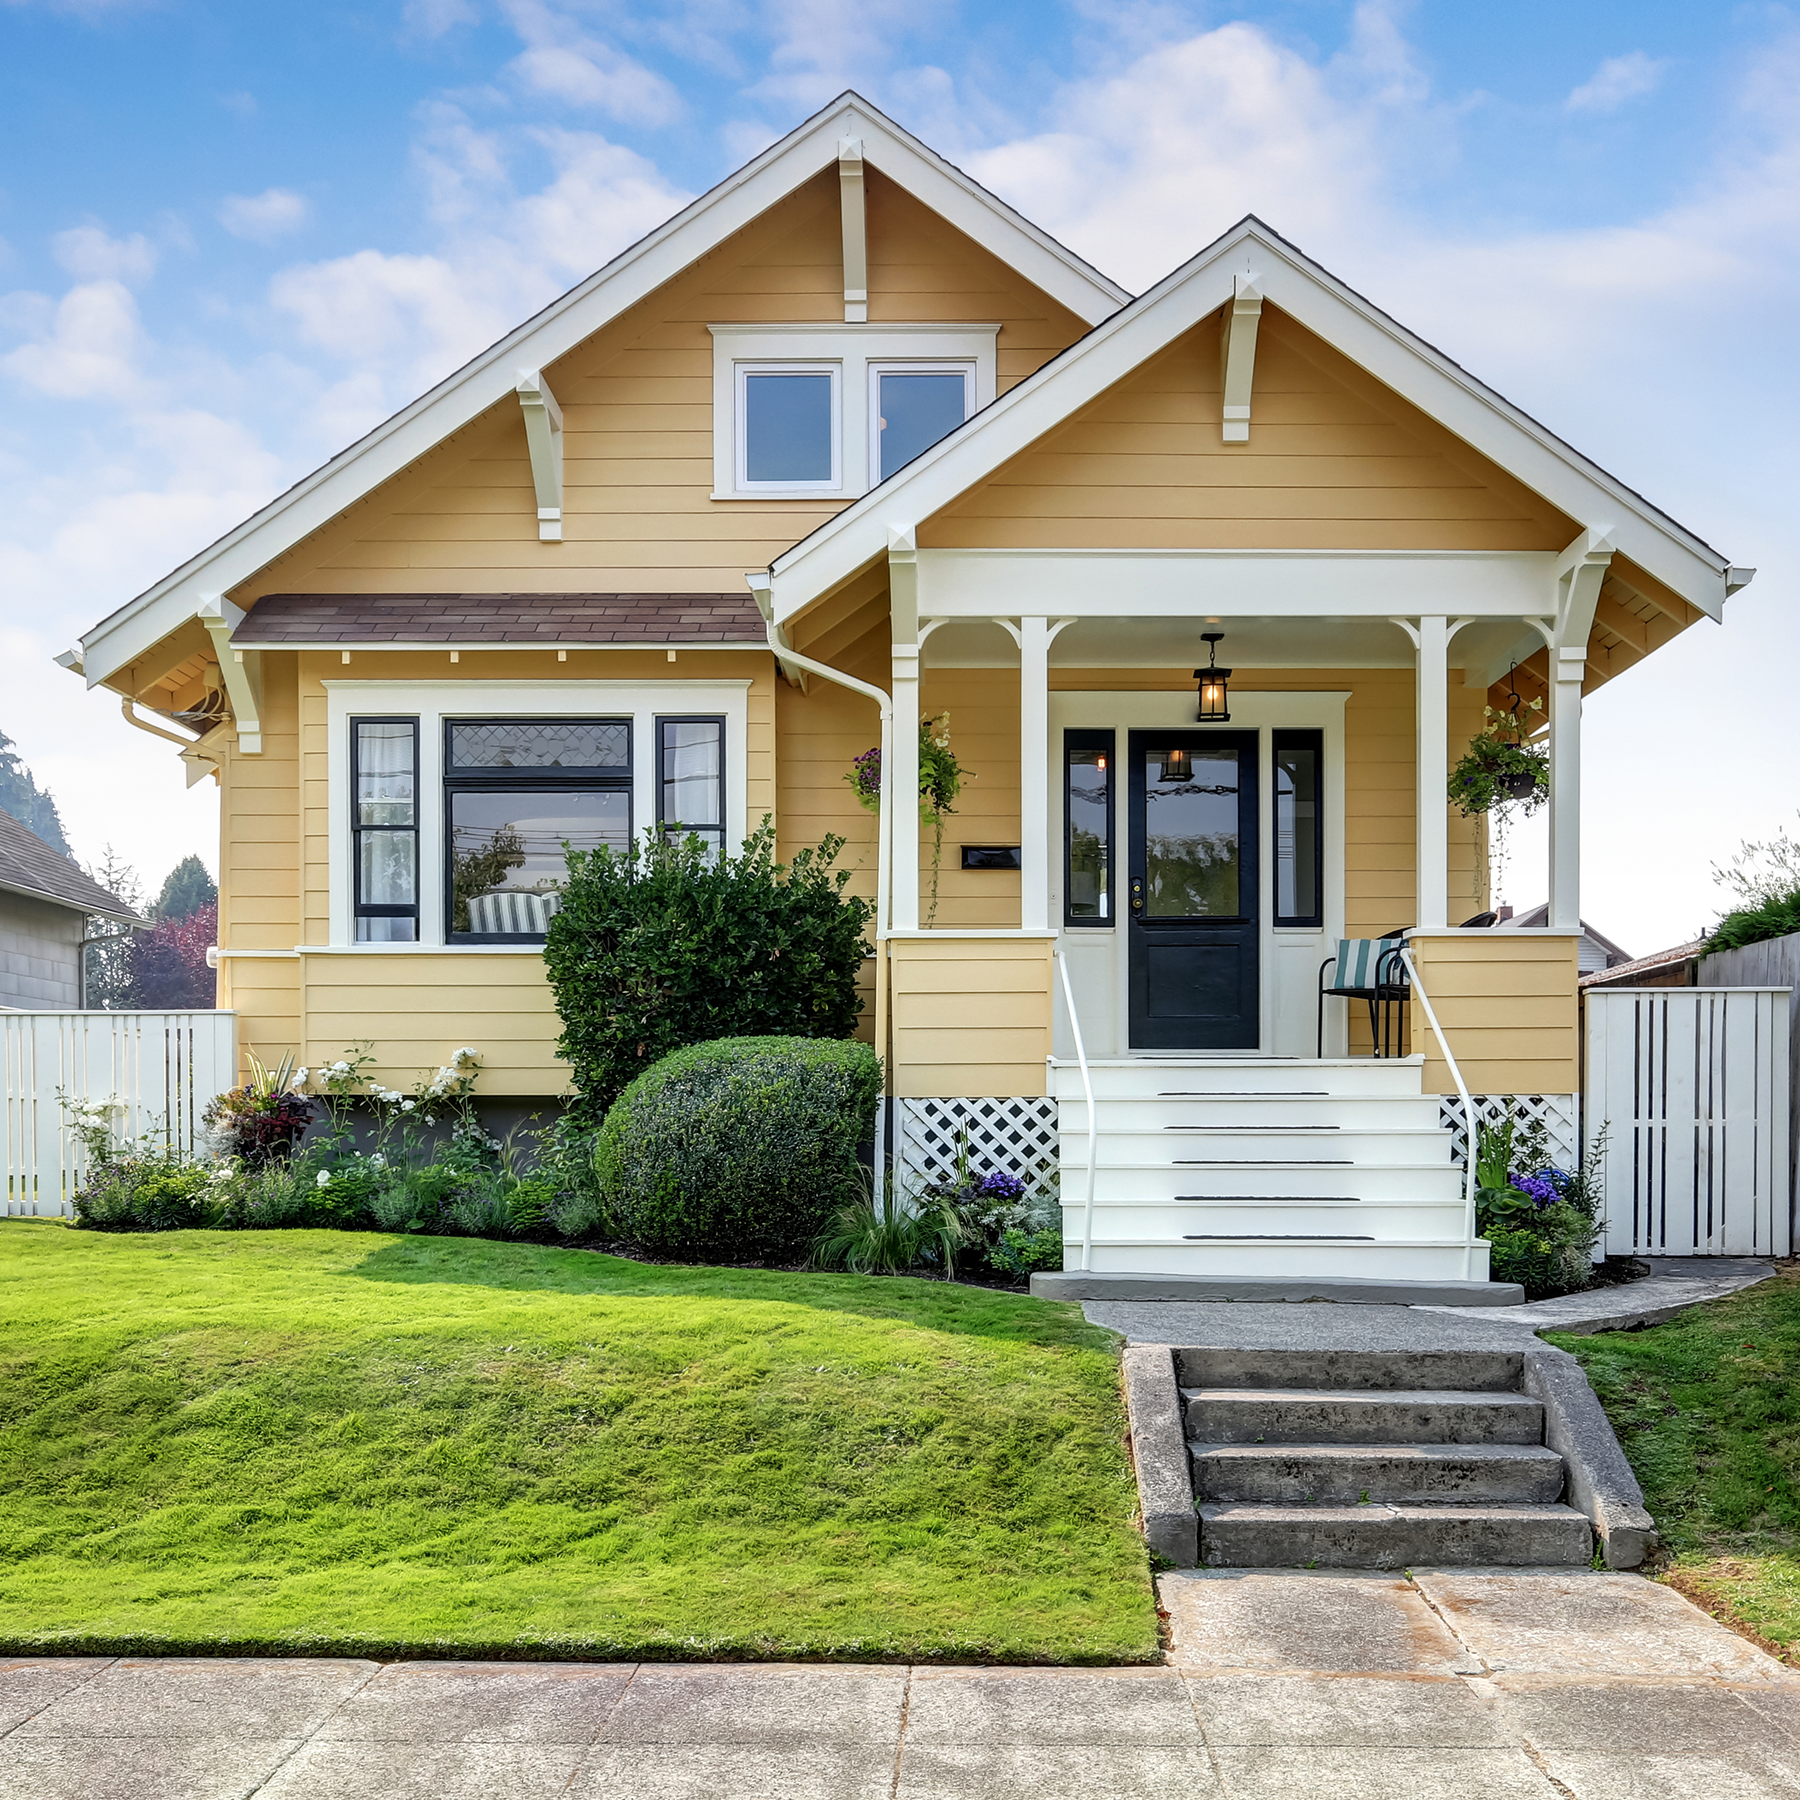 Photo of a yellow house